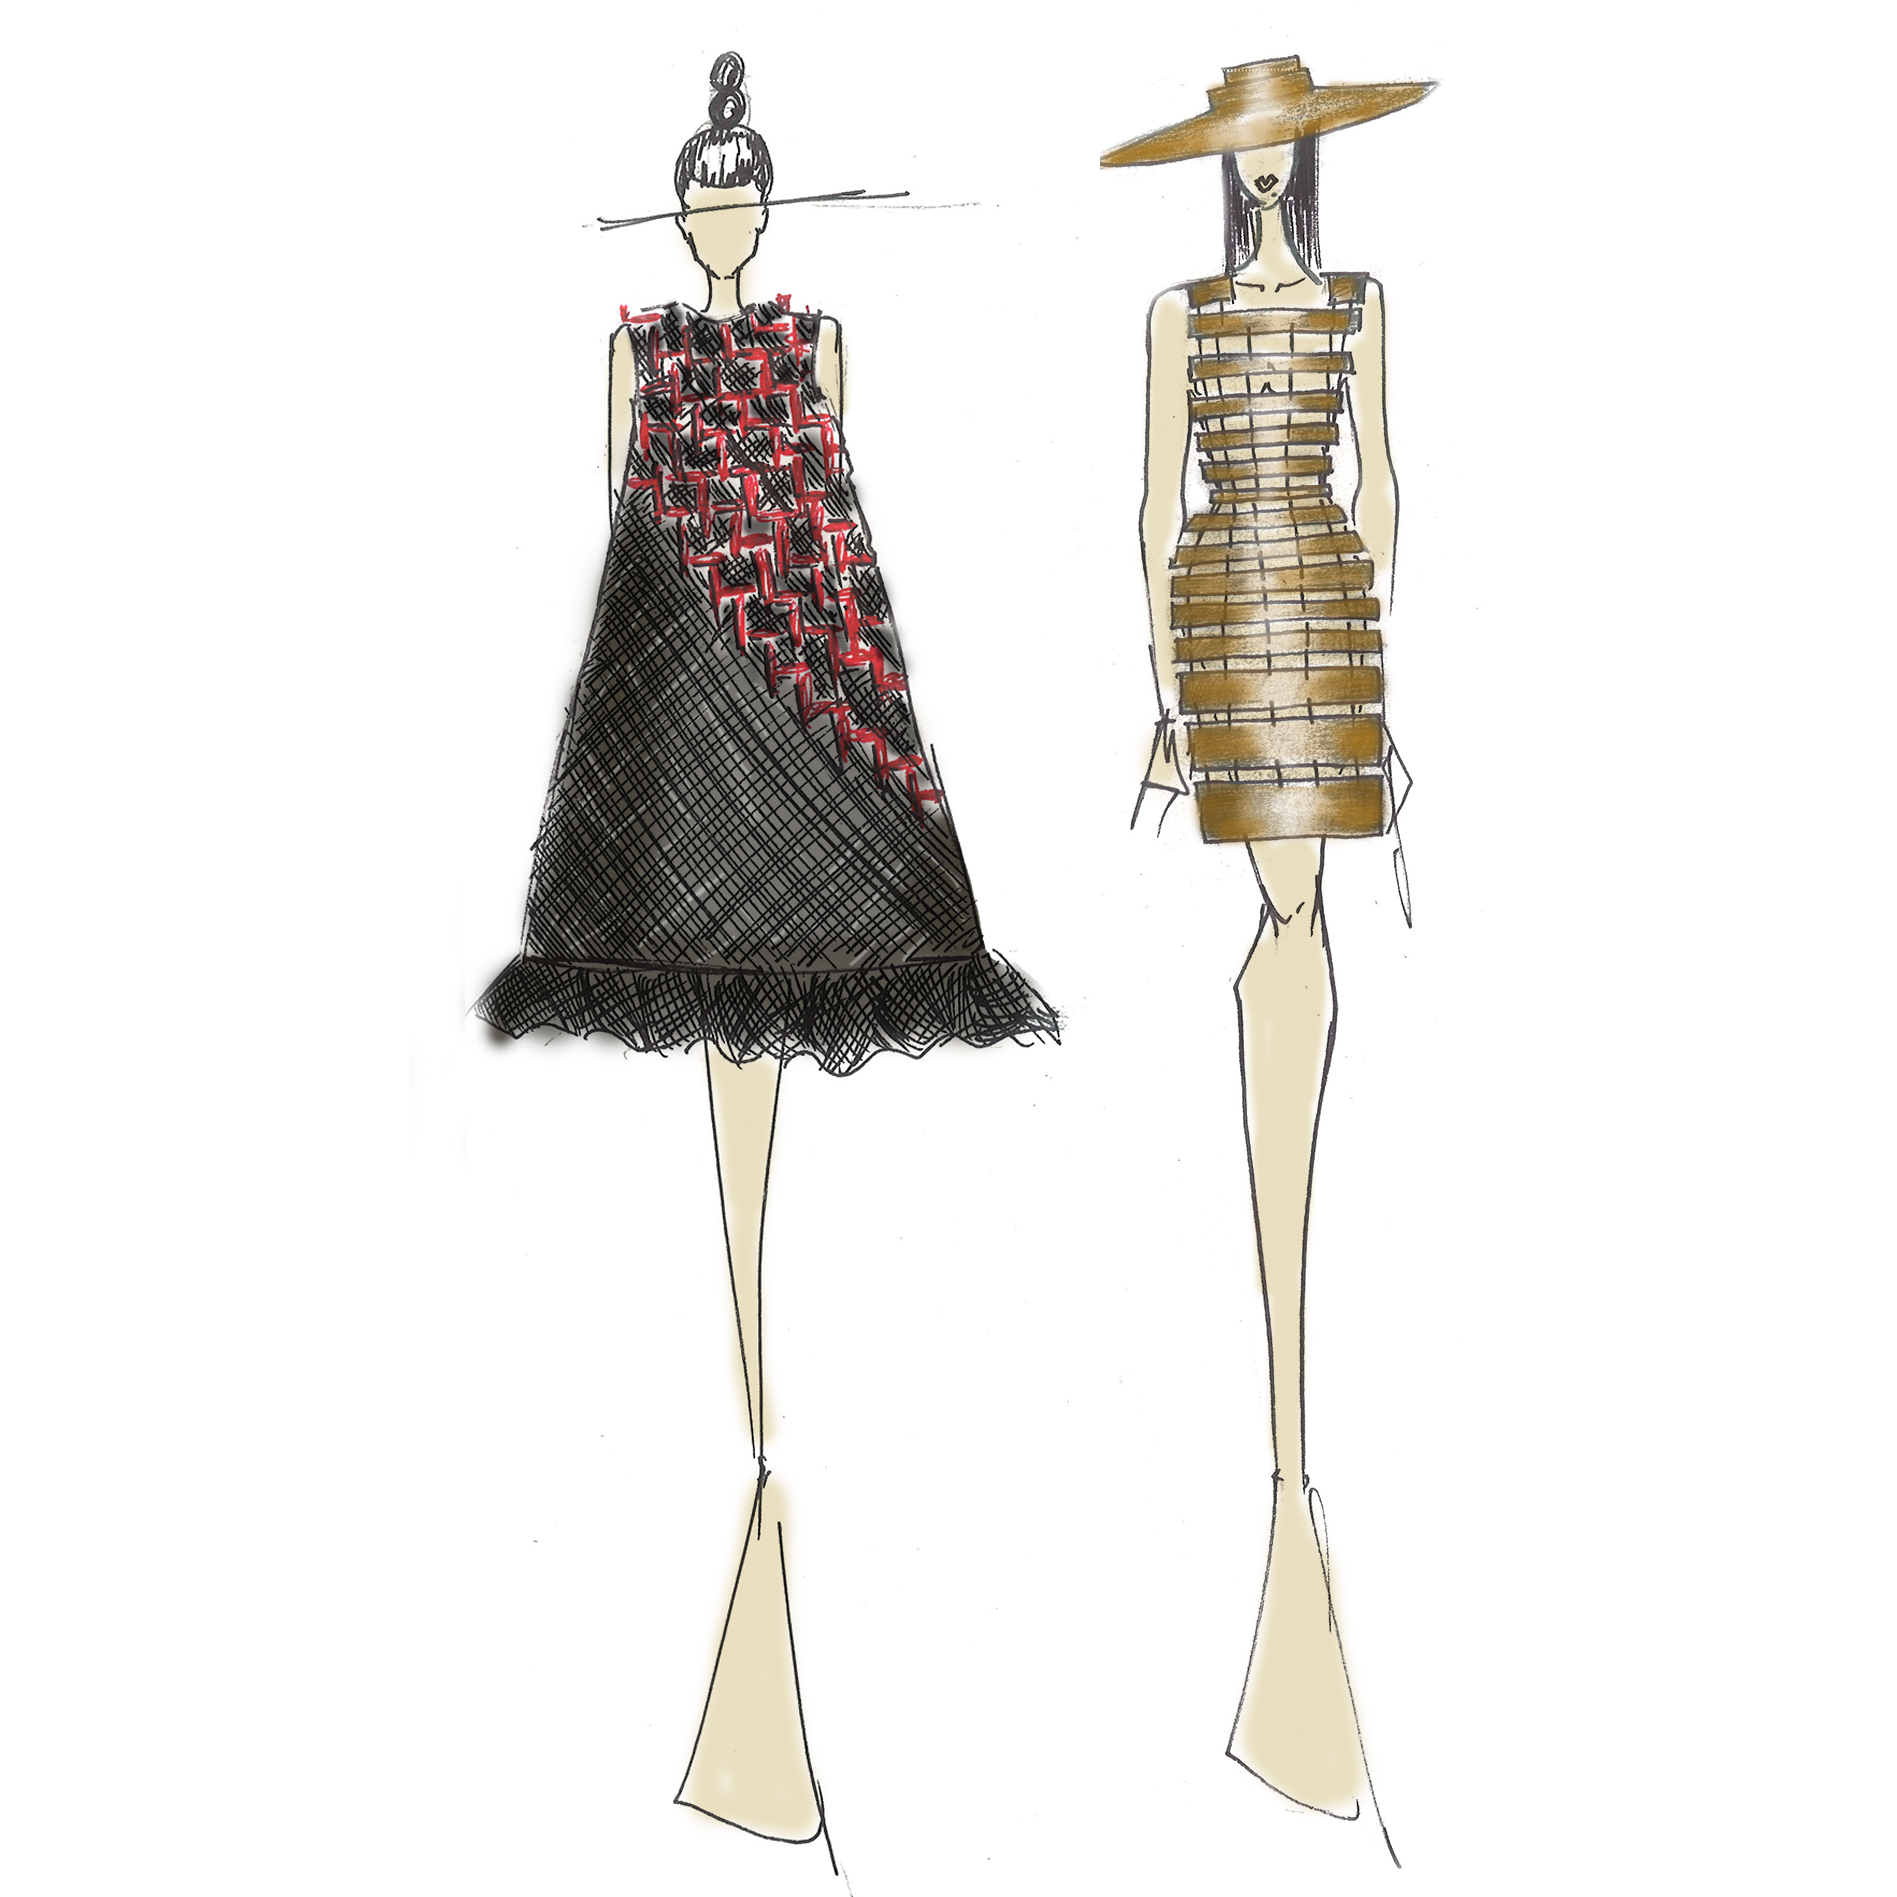 Project Runway: Episode 11 Bold Innovation